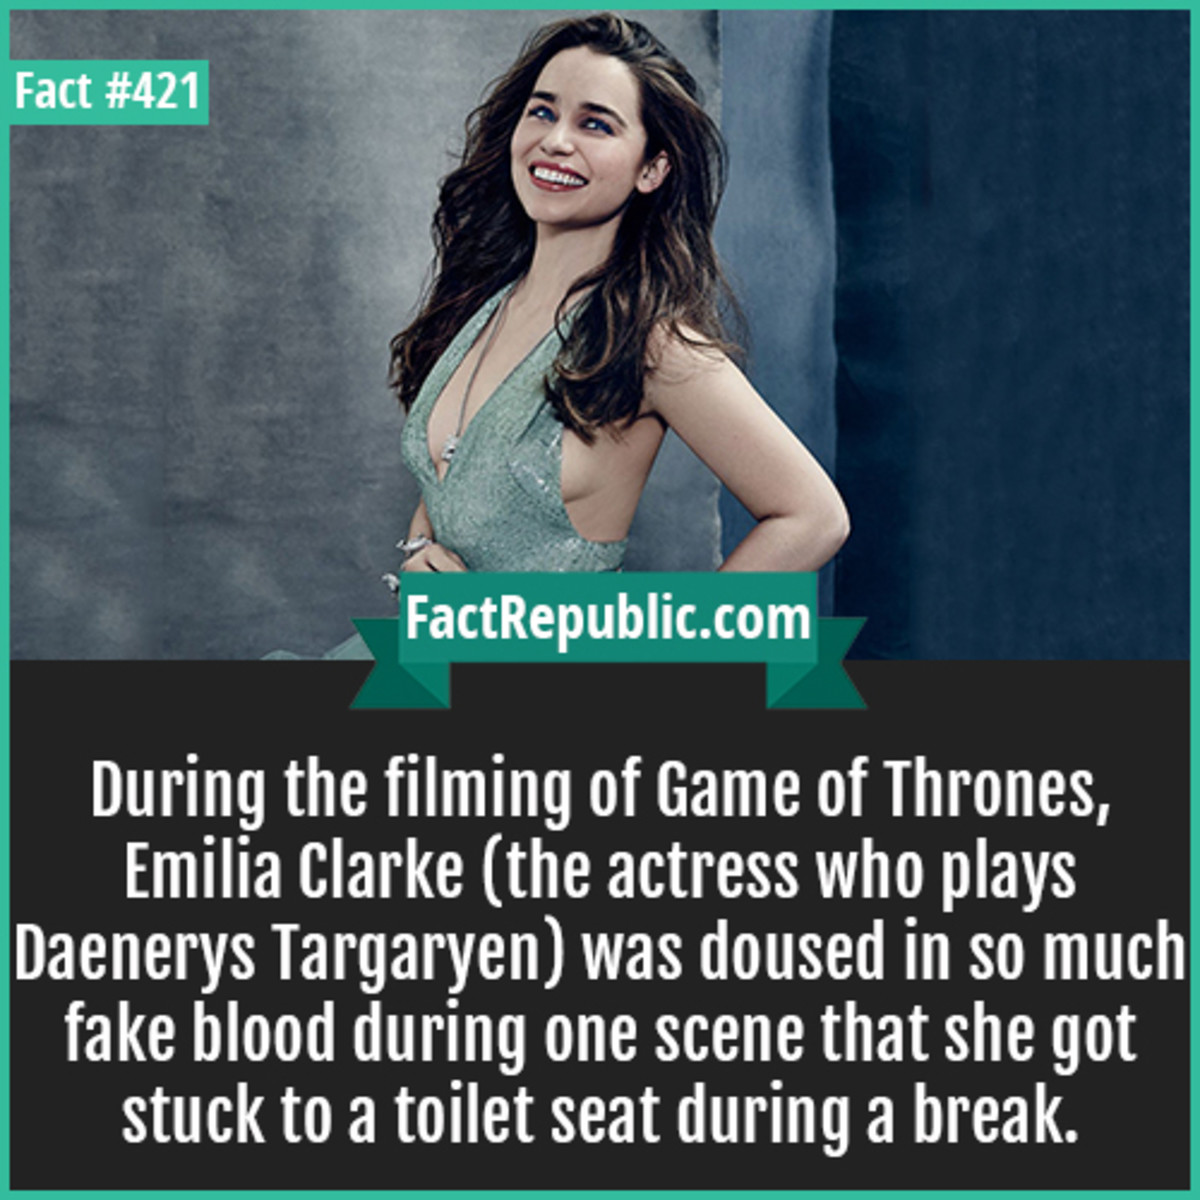 Unique facts you should know!!. . enm During the filming of Home of Thrones, Emilia Clarke (the actress who plays Daenerys Targaryen] was doused in so much fake